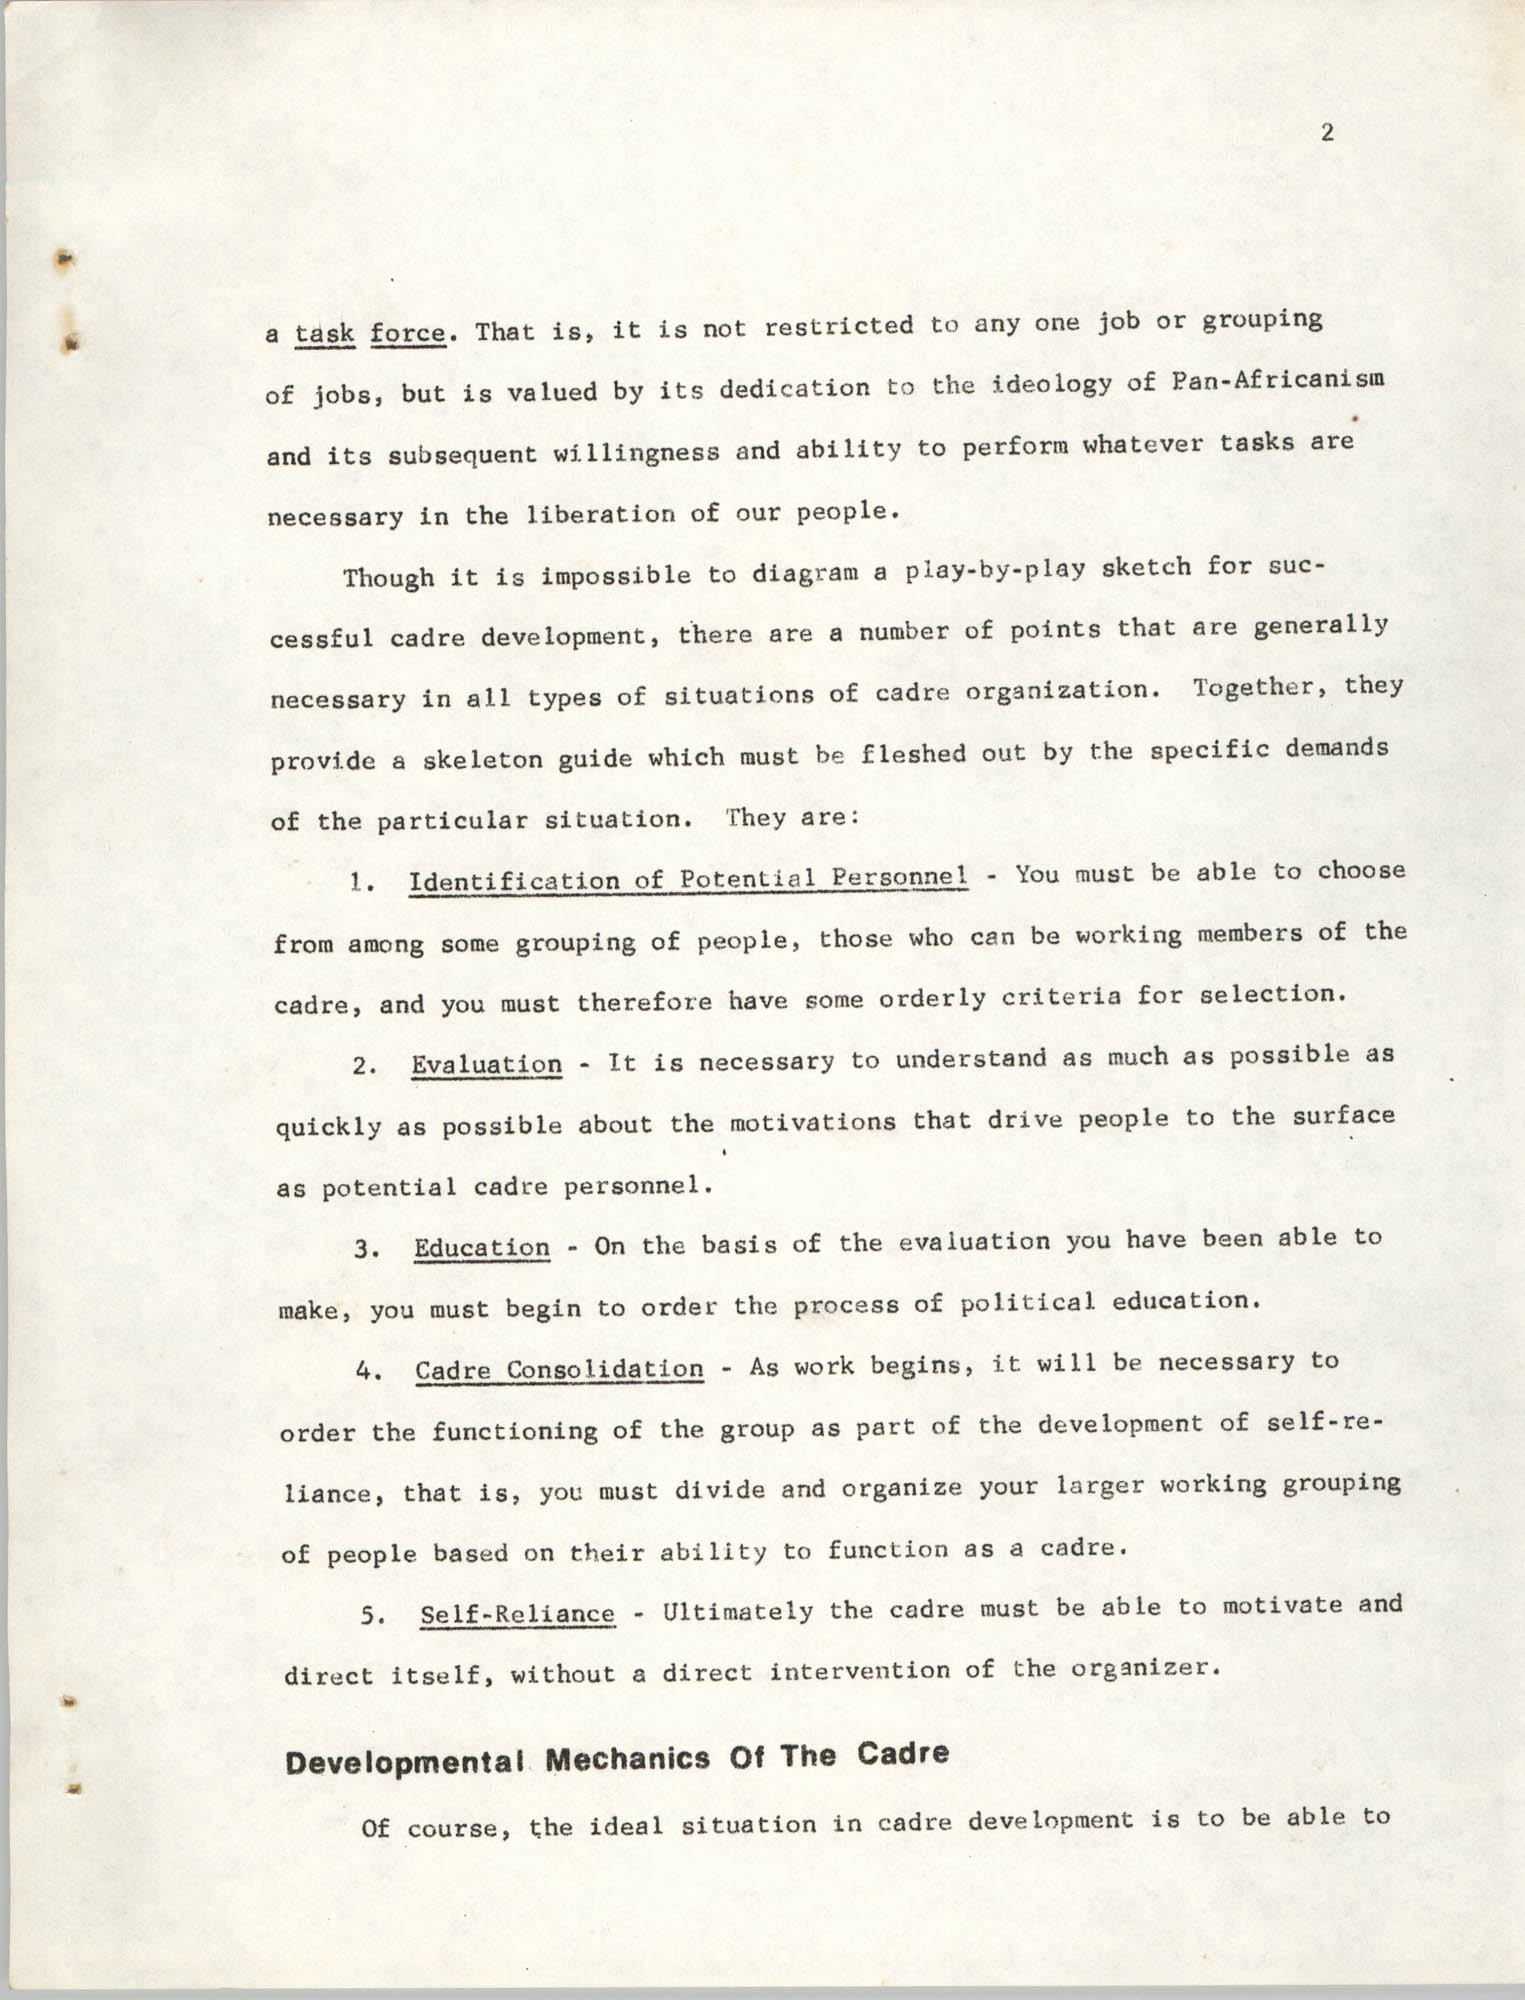 Developing Political Cadres, Page 2